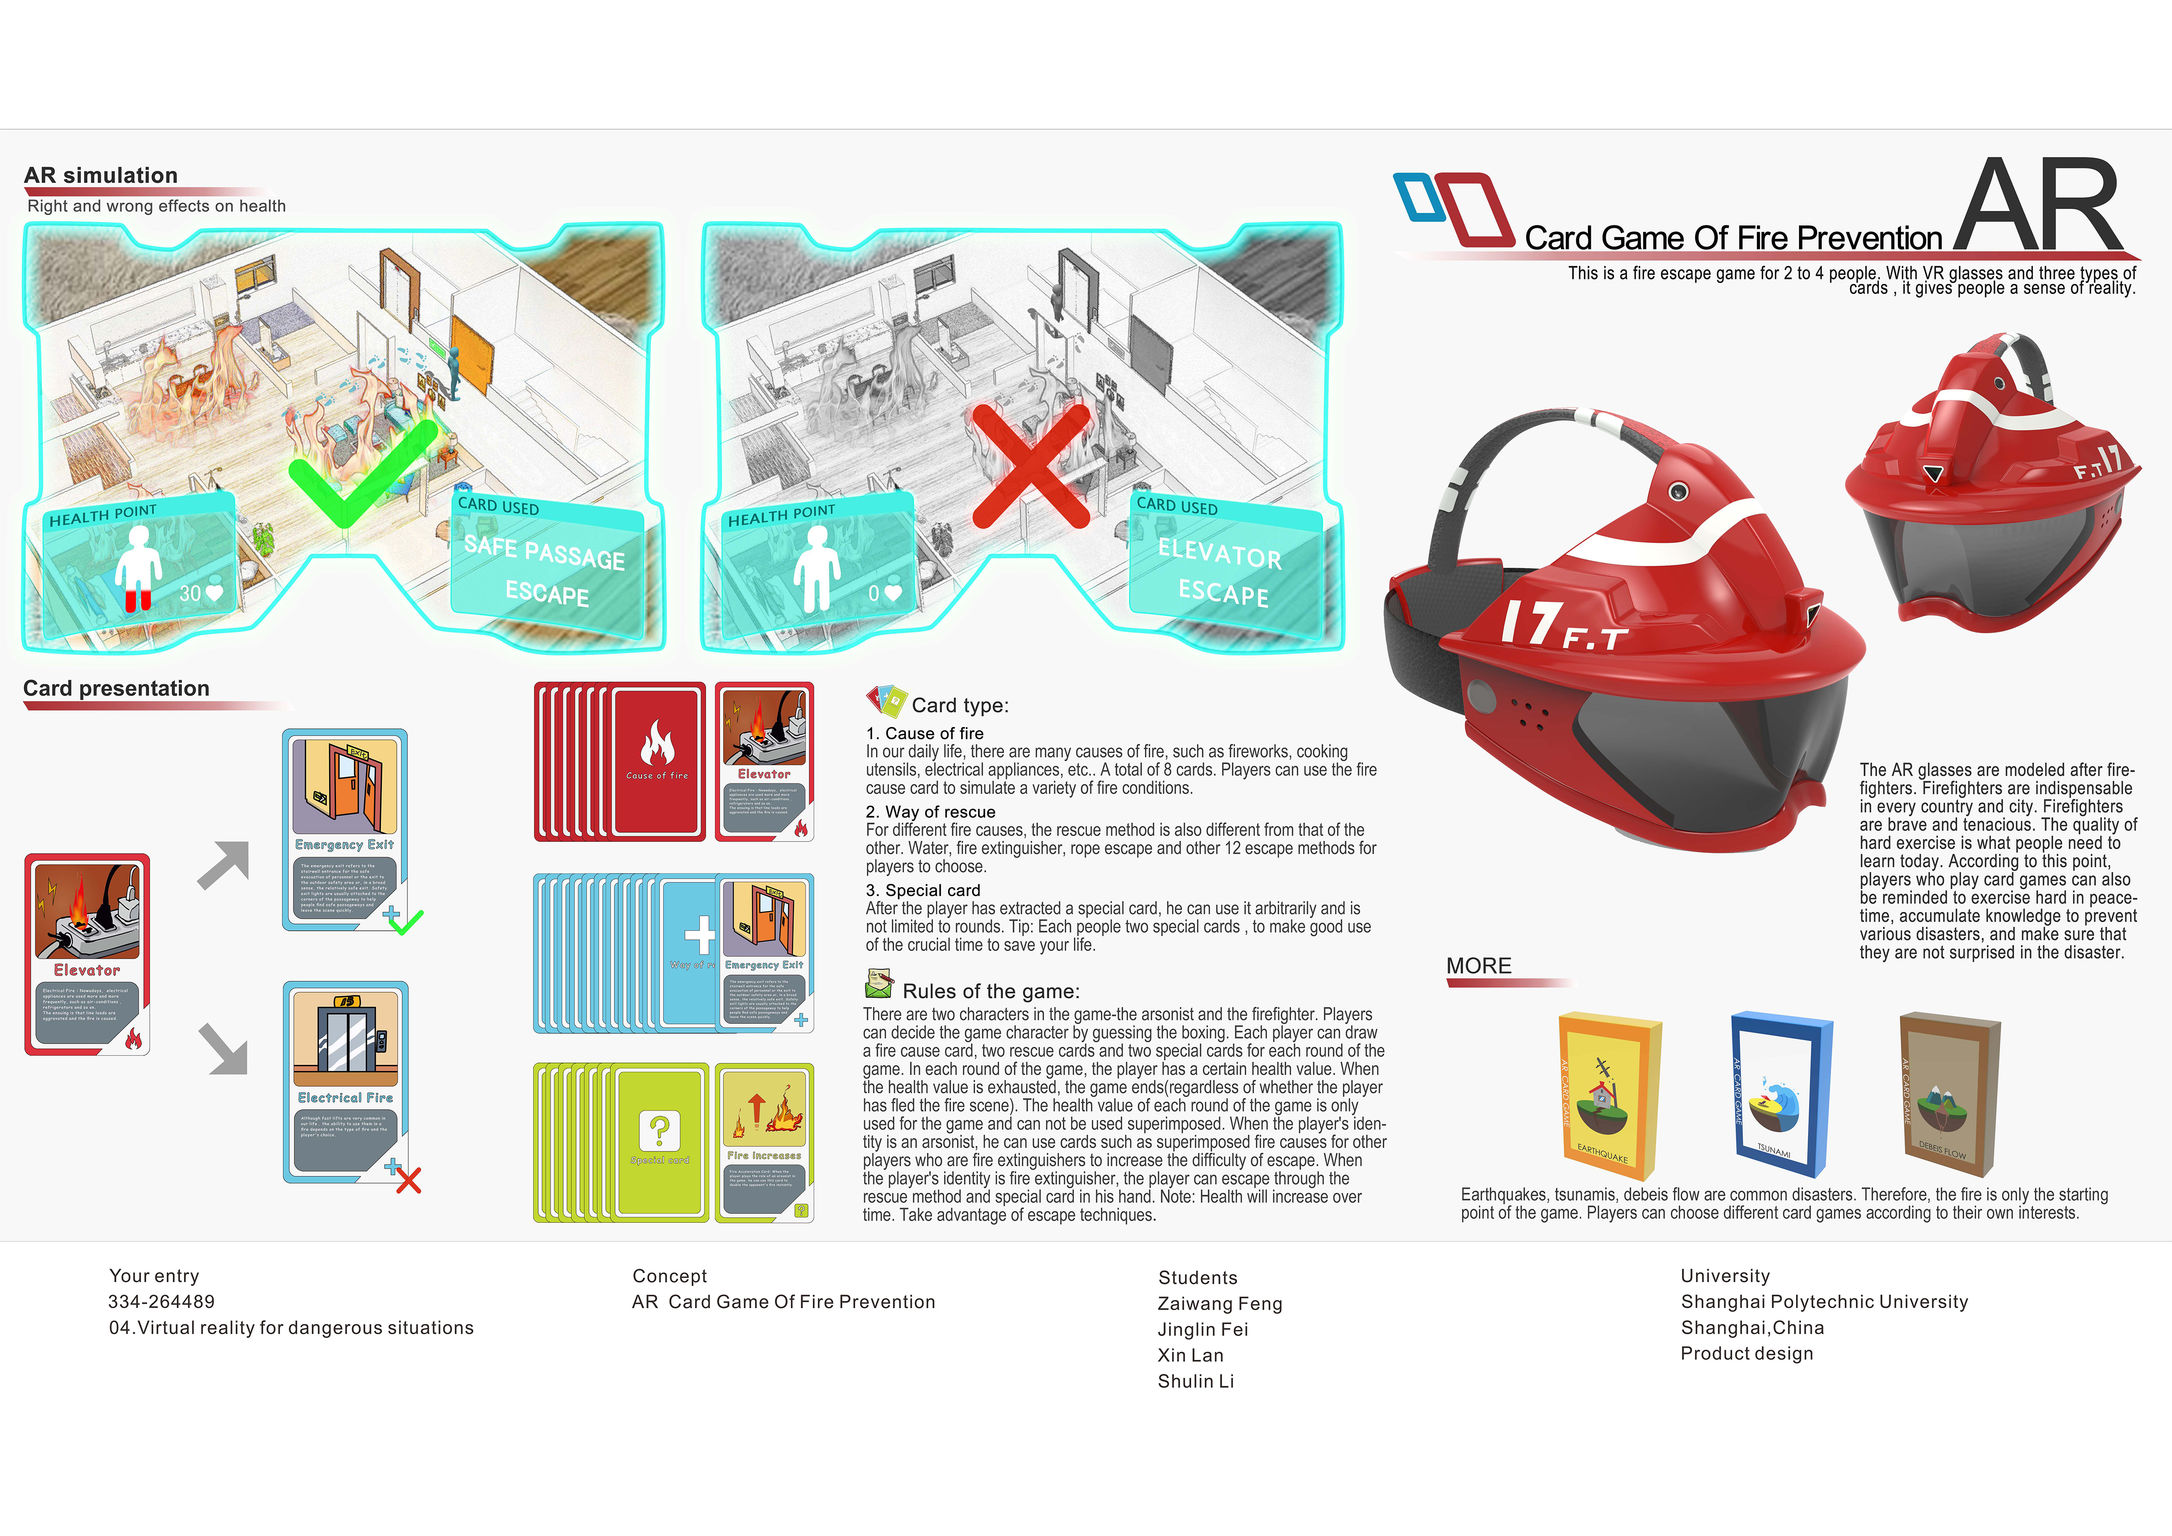 AR Card Game of Fire Prevention | iF WORLD DESIGN GUIDE